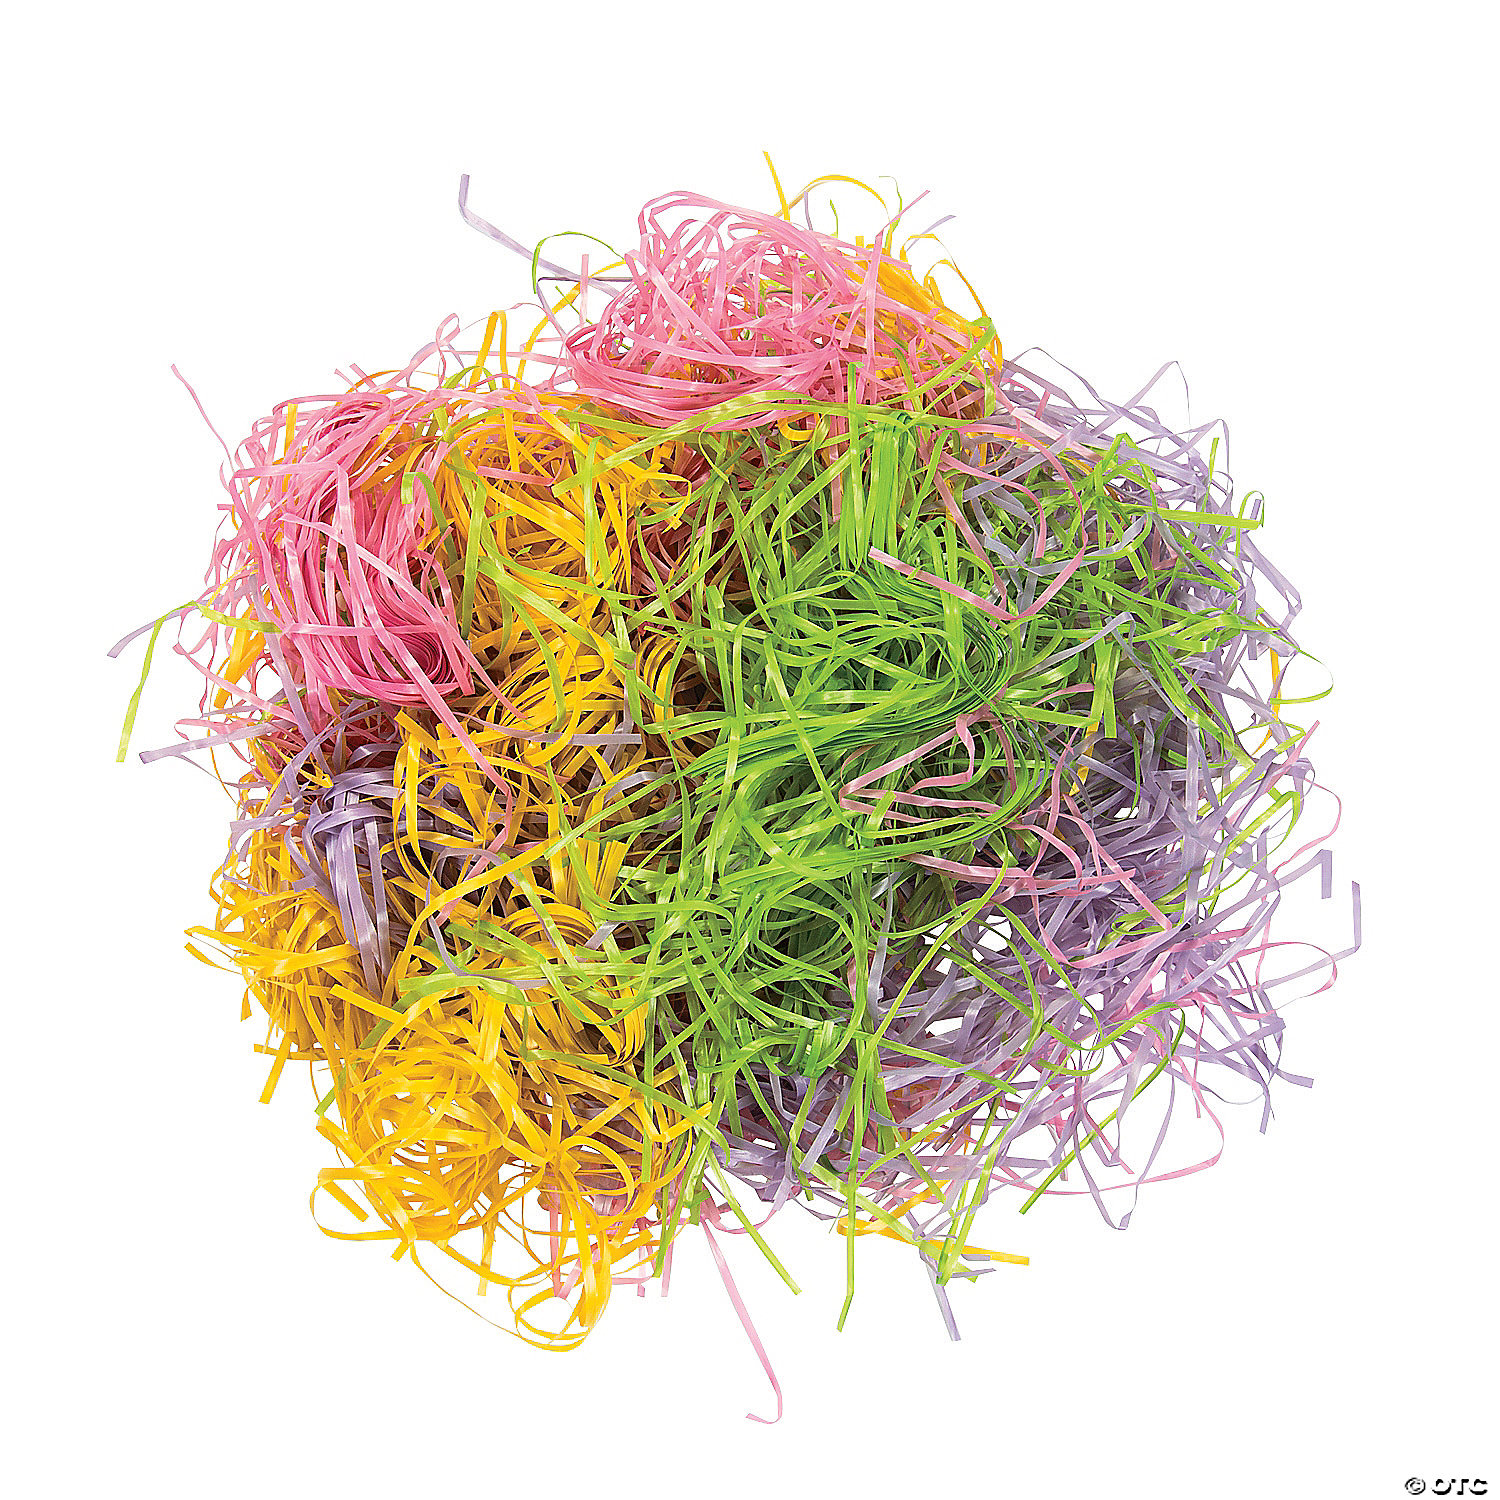 EASTER GRASS Cushion for Children/'s Easter Baskets   Assorted Colors  2 oz Bag